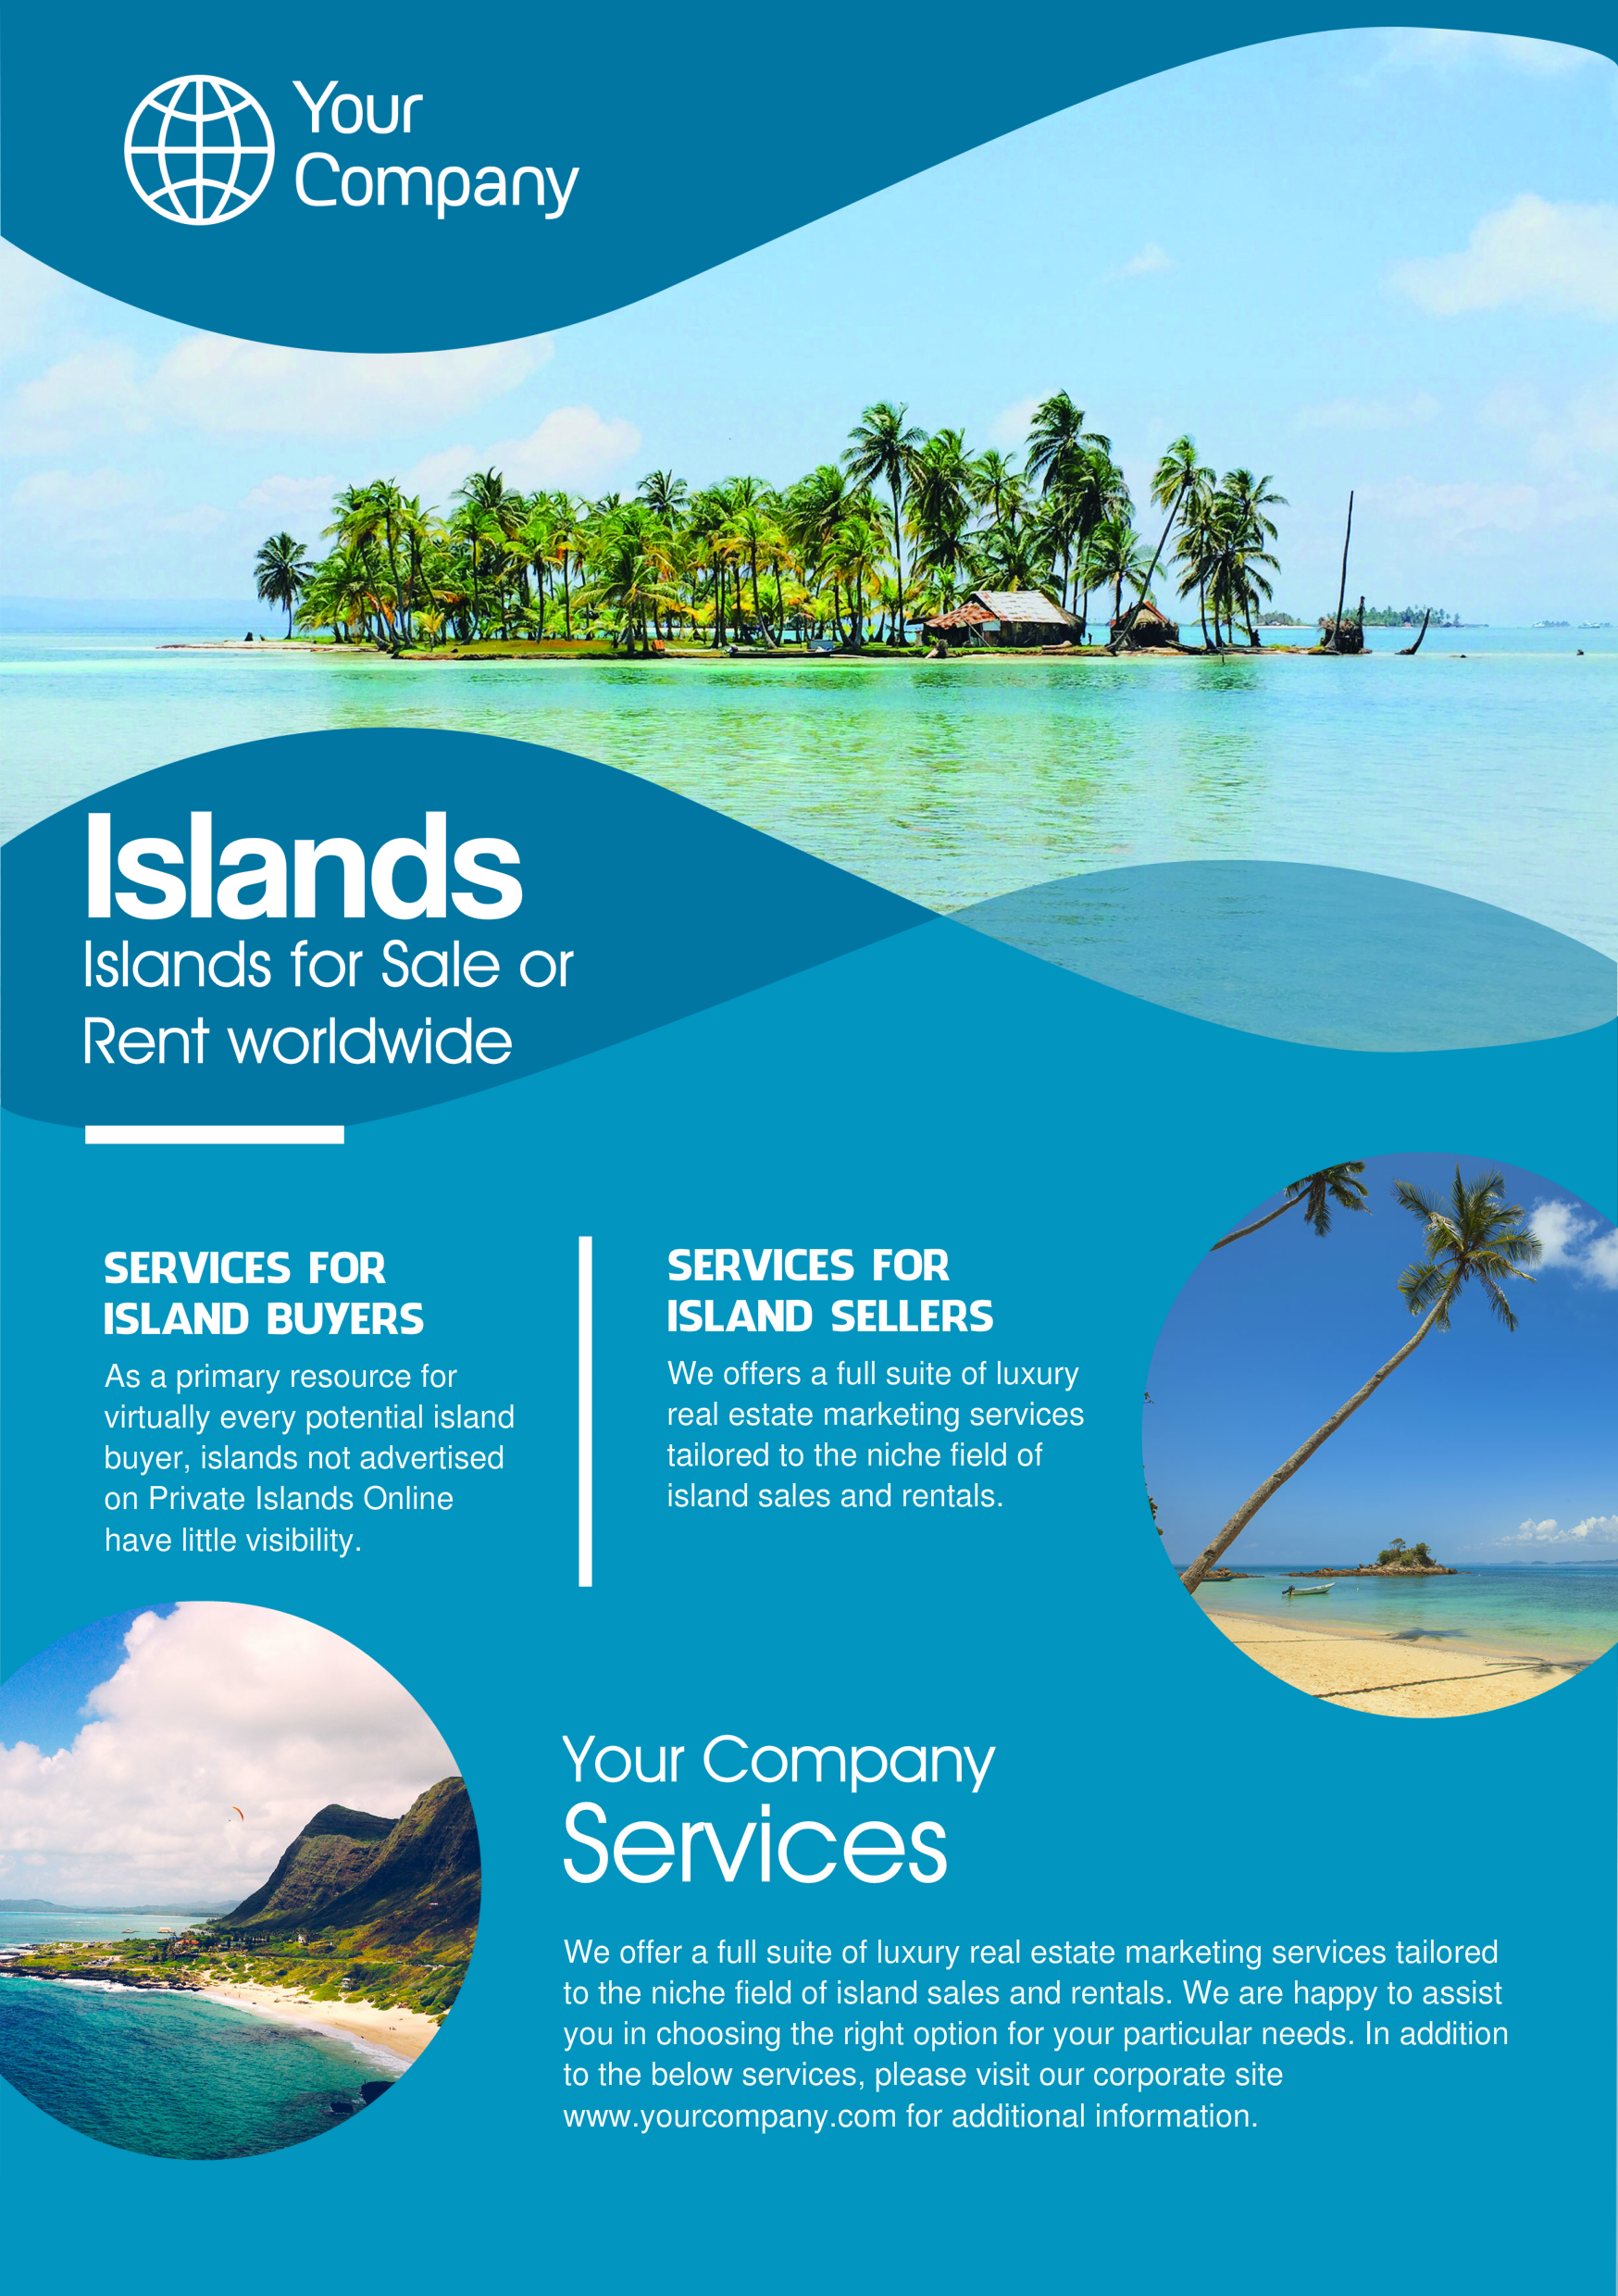 Caribbean A Promotional Flyer Httppremadevideoscomaflyer - Promotional brochure template